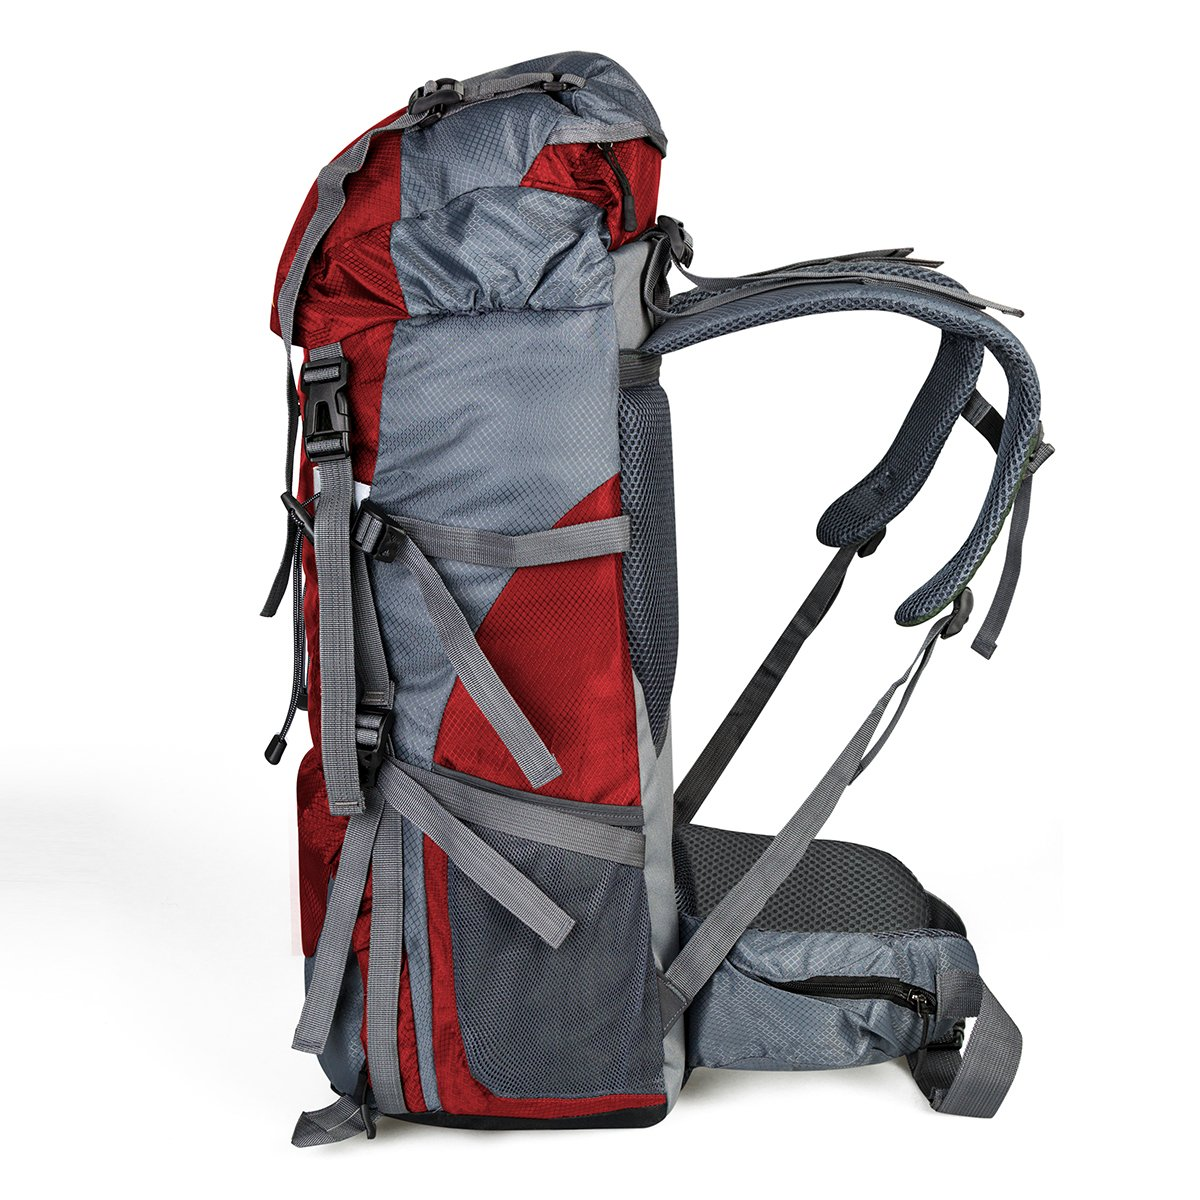 60+5L Water Resistant Hiking Backpack Outdoor Bag for Camping Climbing Mountaineering Travel Daypack Size 12.2\'\'x 9.8\'\'x 29.9\'\' (Red)